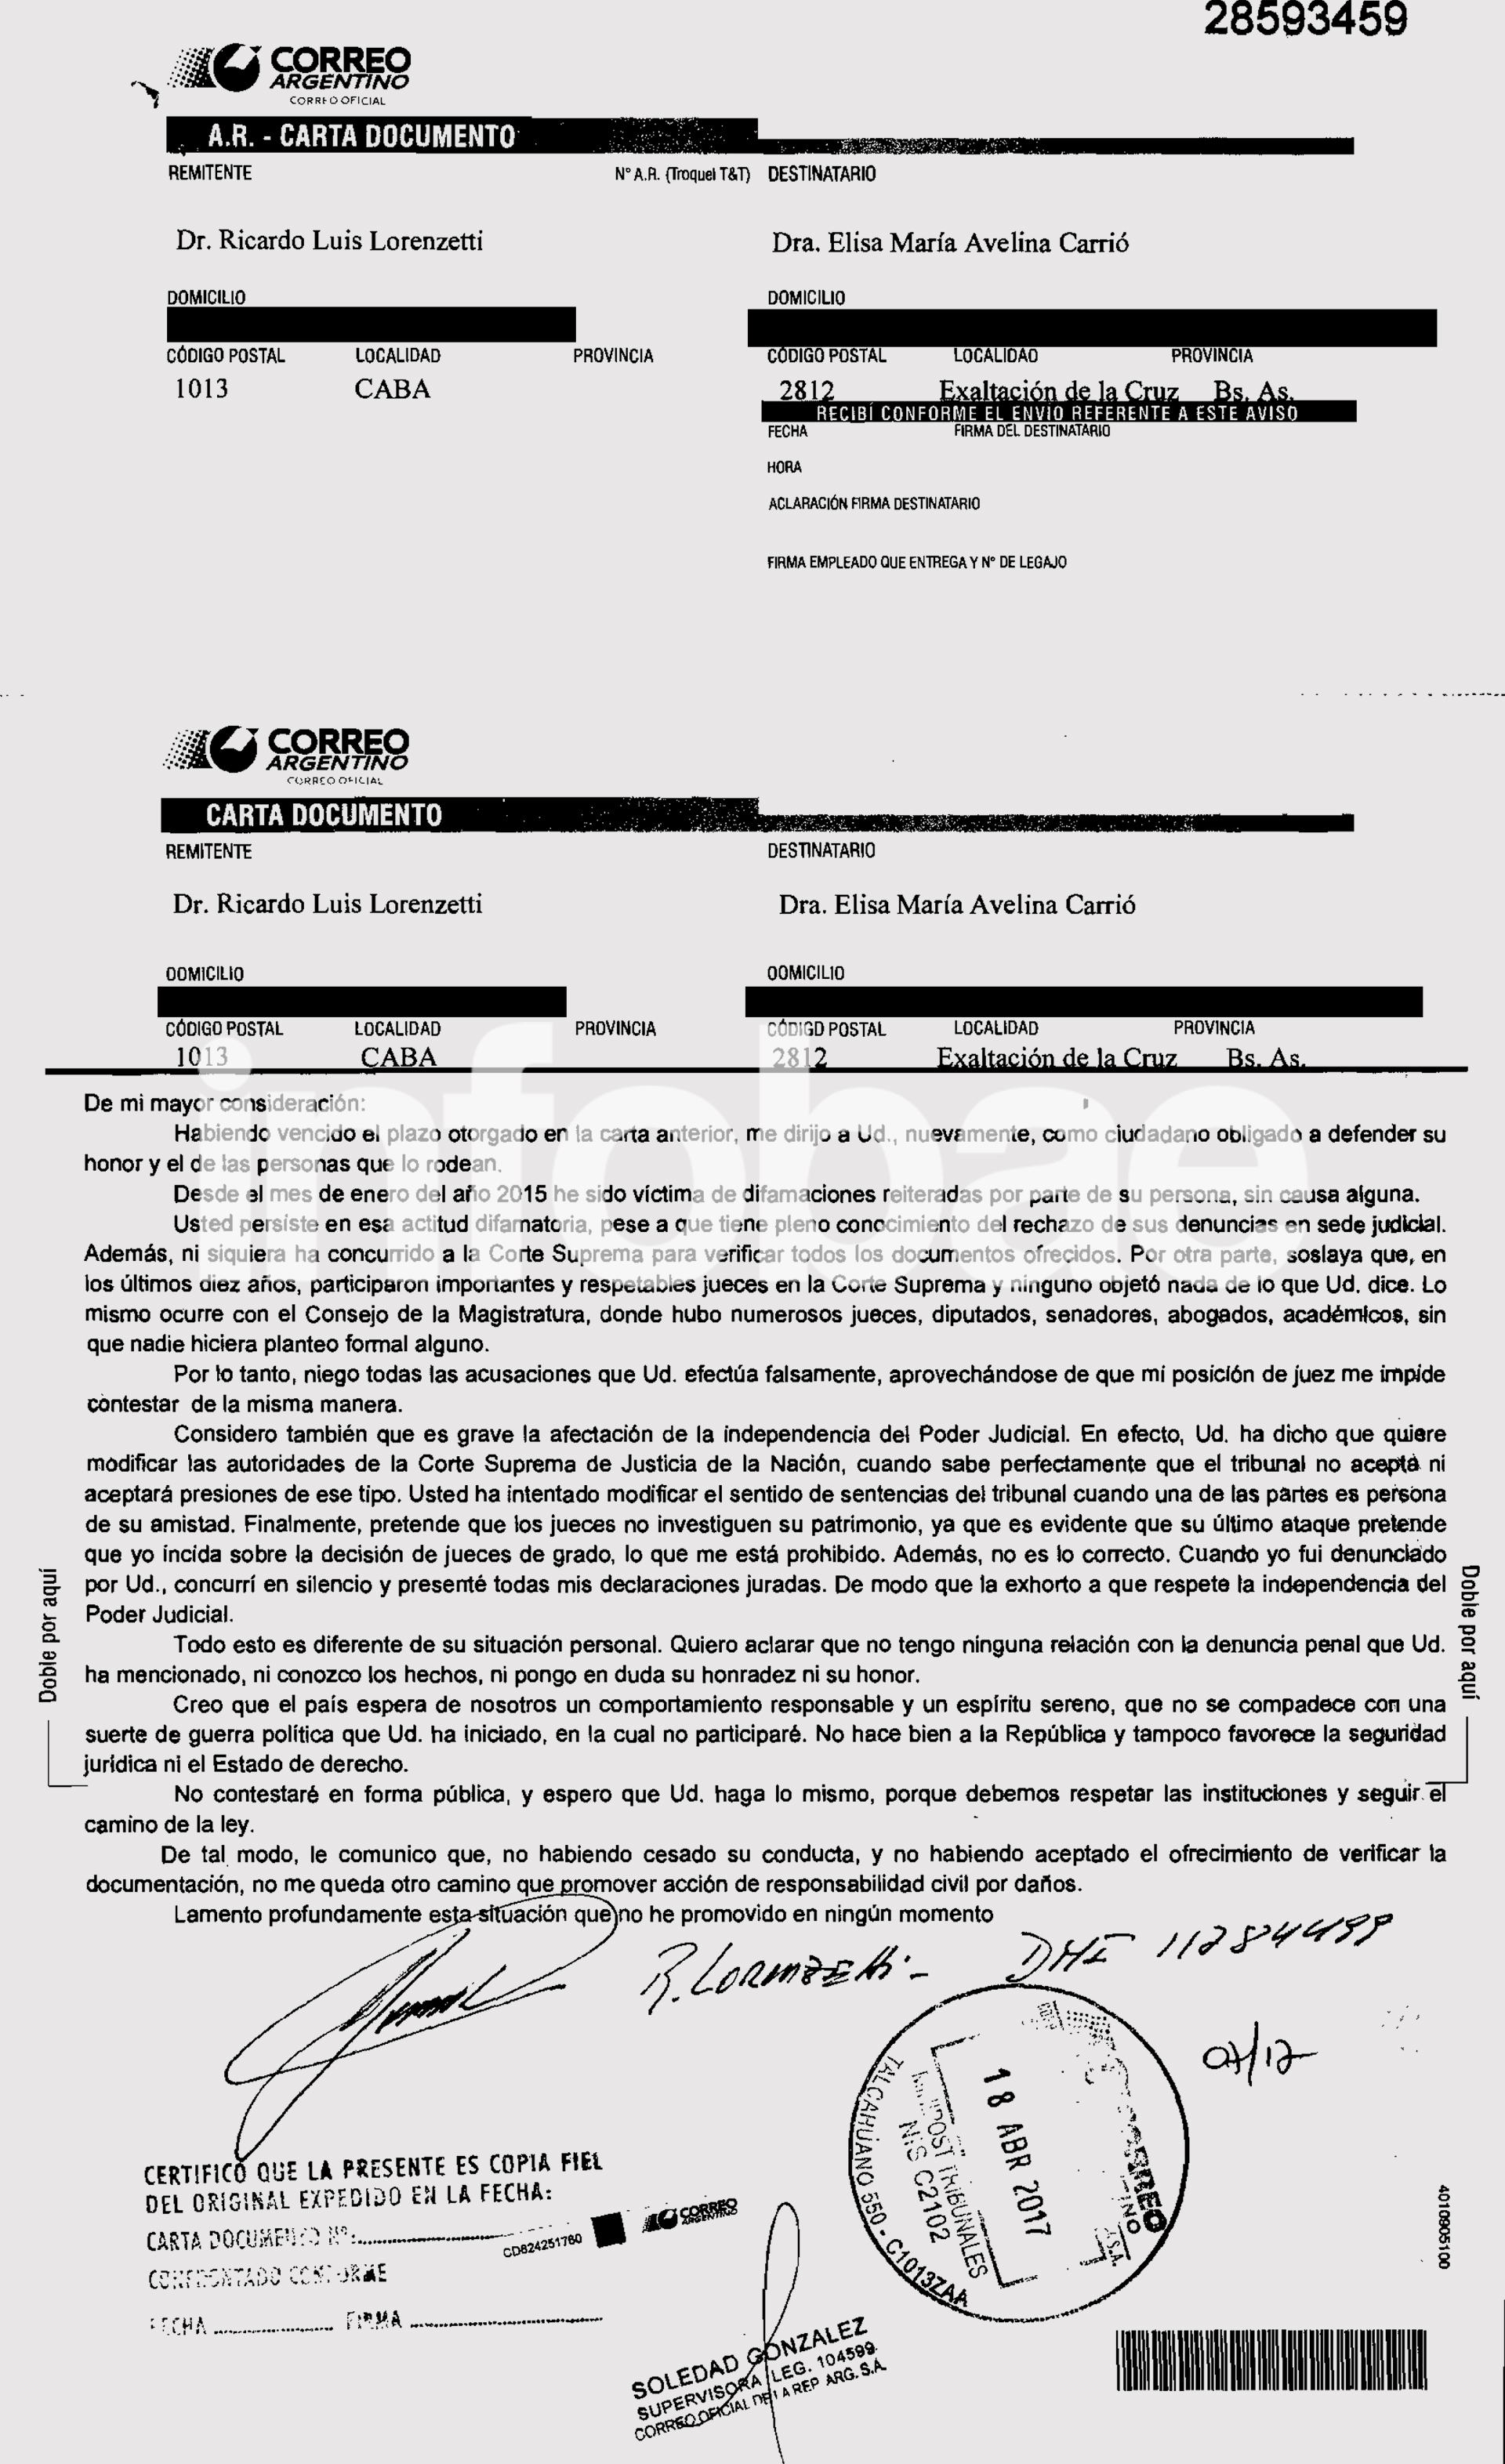 Captura de la carta documento enviada por Lorenzetti a Carrió